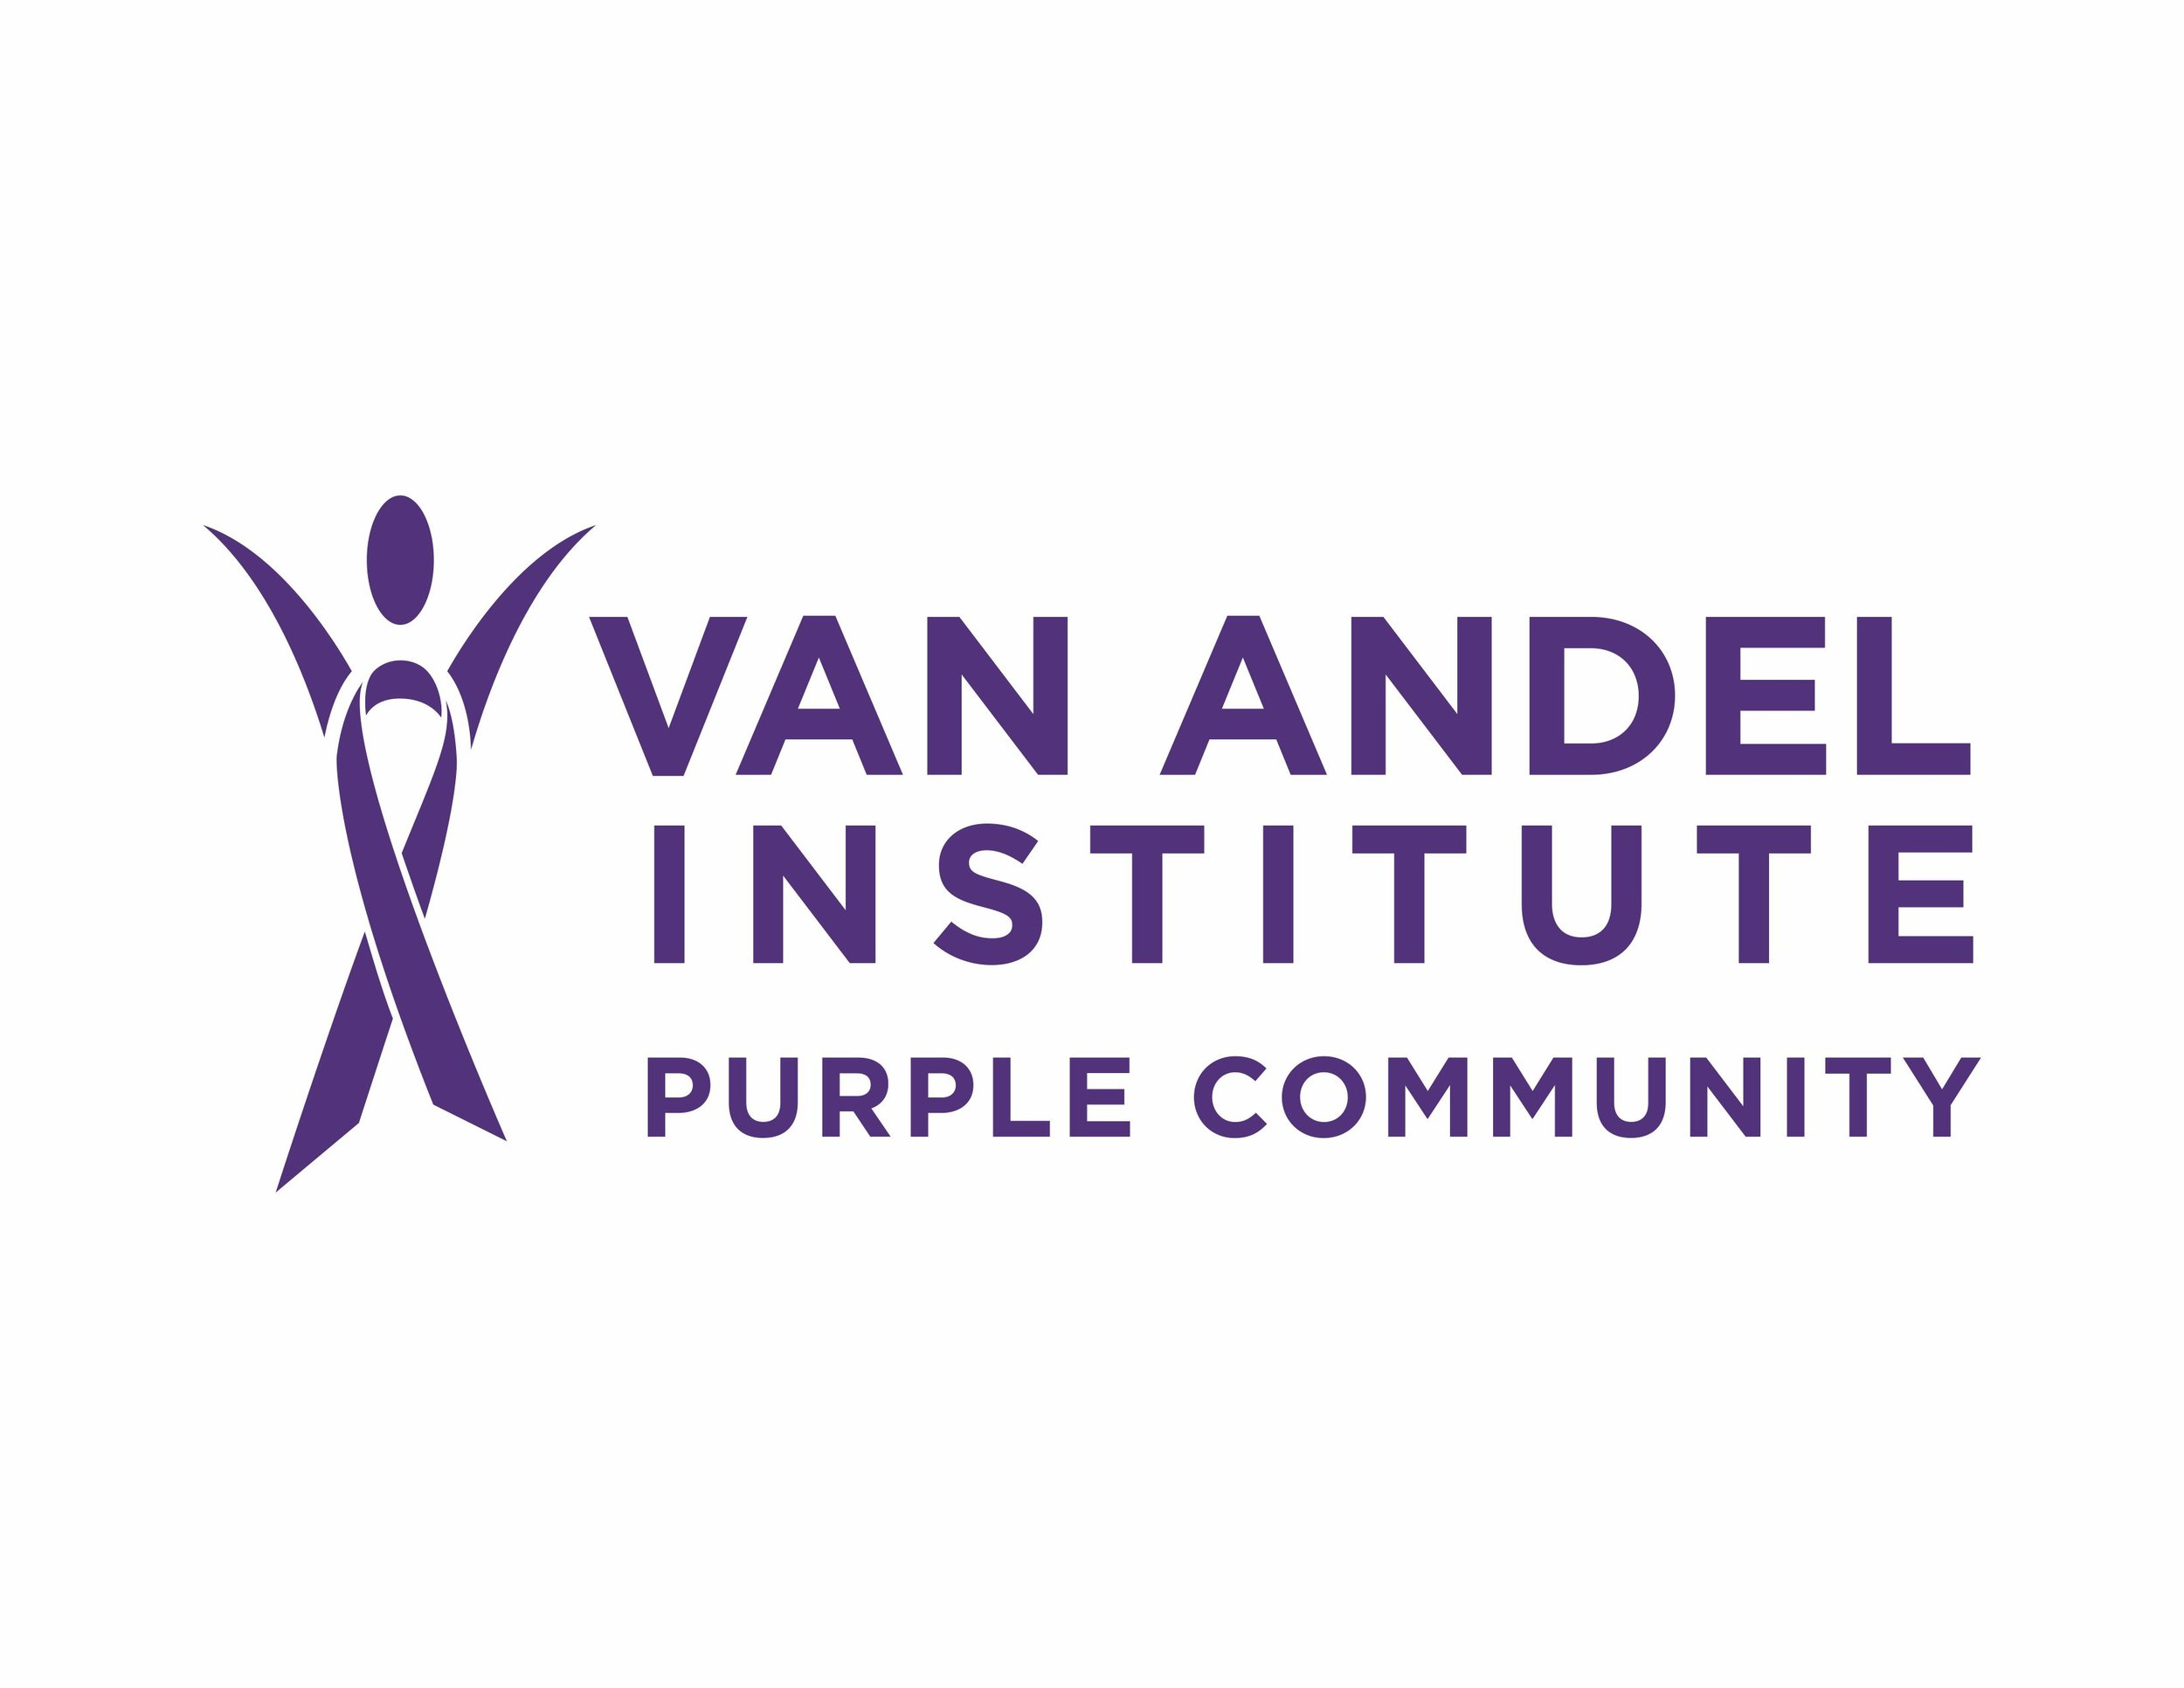 Van Andel Institute Purple Community - Purple Community is the Van Andel Institute's program to help connect people towards the cause of fighting cancer and neurodegenerative diseases. ADDIX has assisted Purple Community along with Southside Ice Arena in raising 75k for the cause in just one event. We look forward to many more!Website: purplecommunity.vai.org